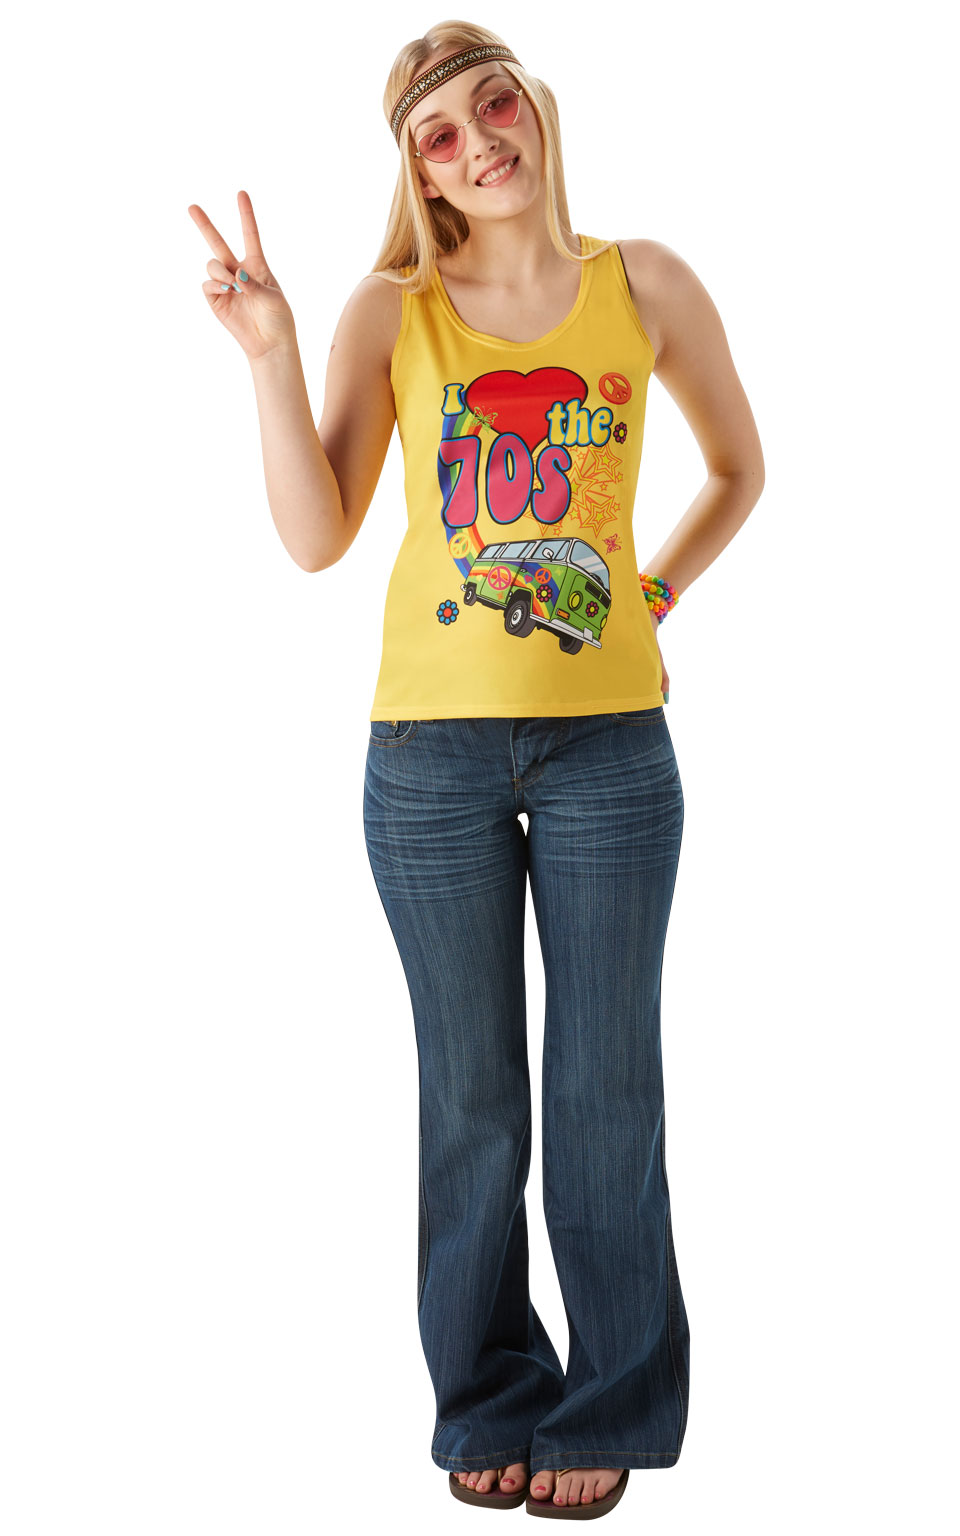 Womens Ladies I Love The 70S Vest Top Fancy Dress Costume Outfit Hippy Hippie